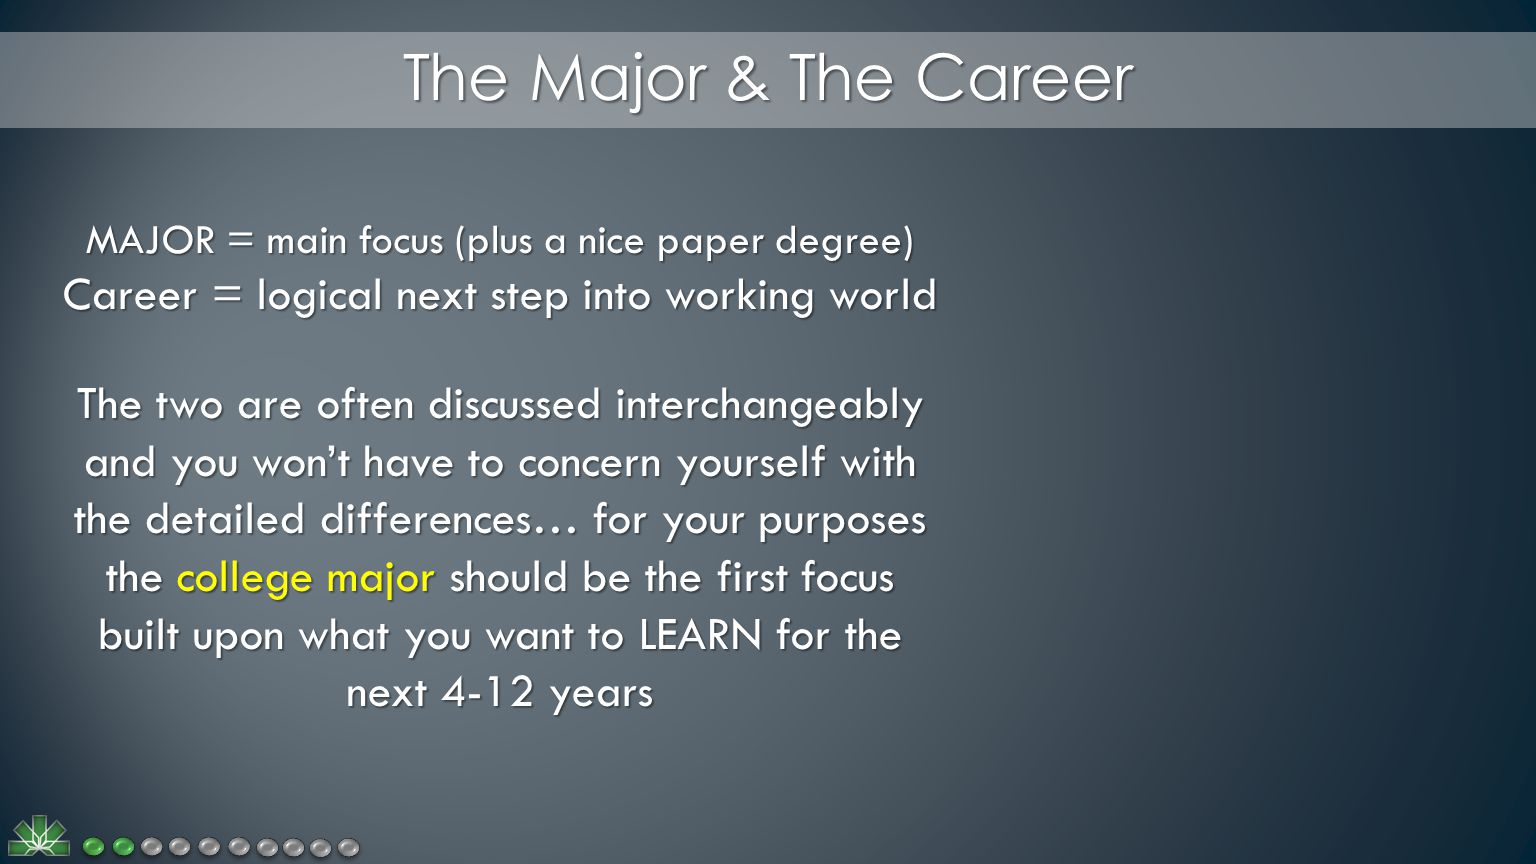 The Major & The Career MAJOR = main focus (plus a nice paper degree) Career = logical next step into working world The two are often discussed interchangeably and you won't have to concern yourself with the detailed differences… for your purposes the college major should be the first focus built upon what you want to LEARN for the next 4-12 years